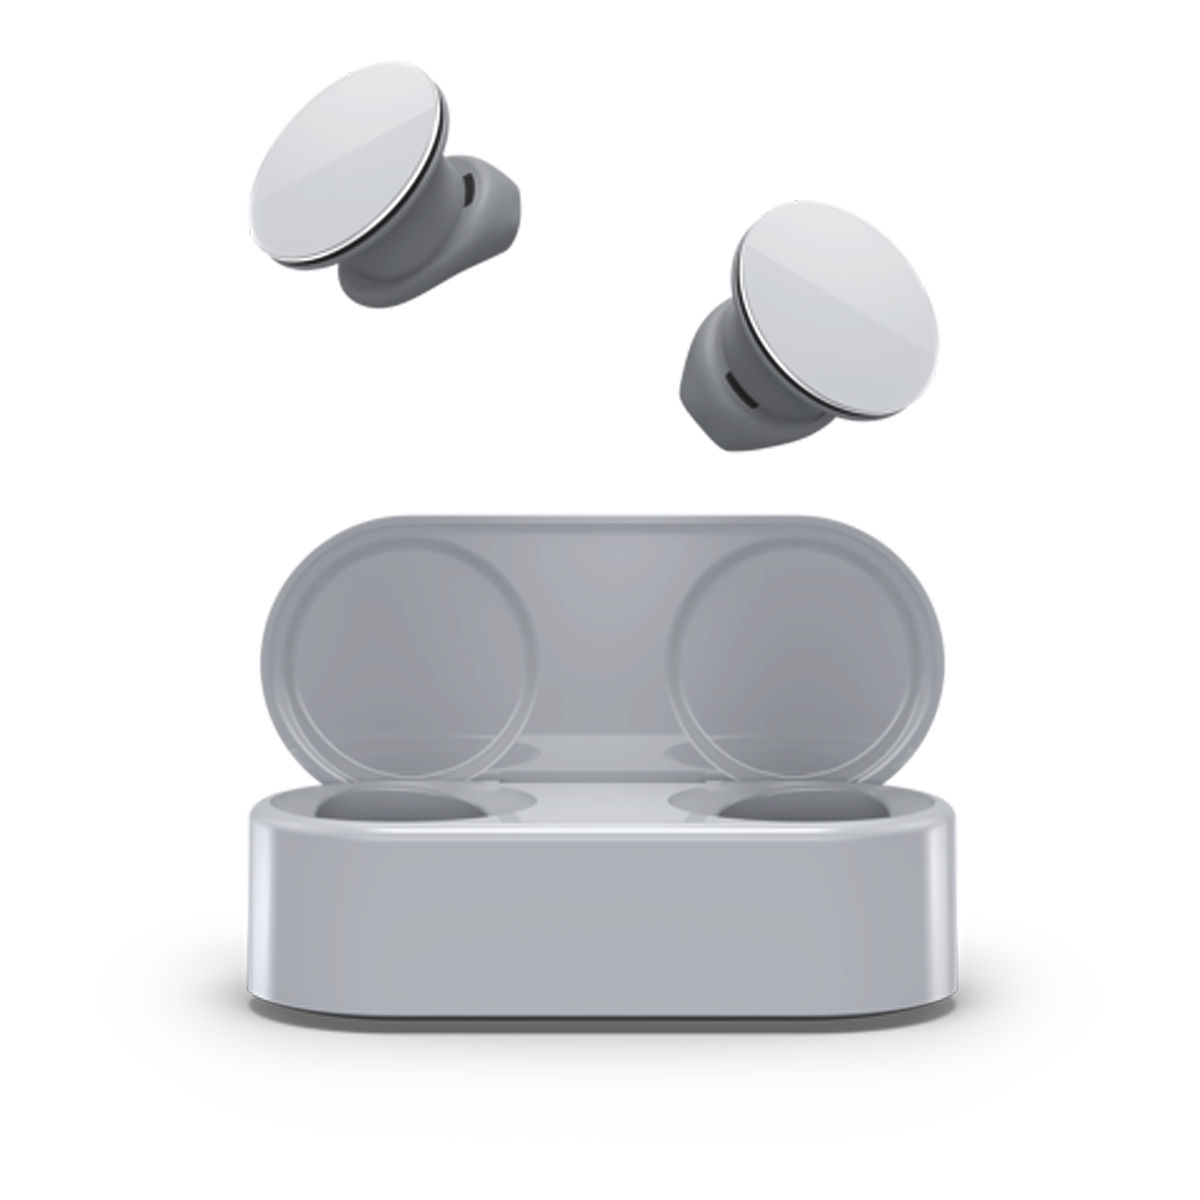 New Microsoft Surface Earbuds